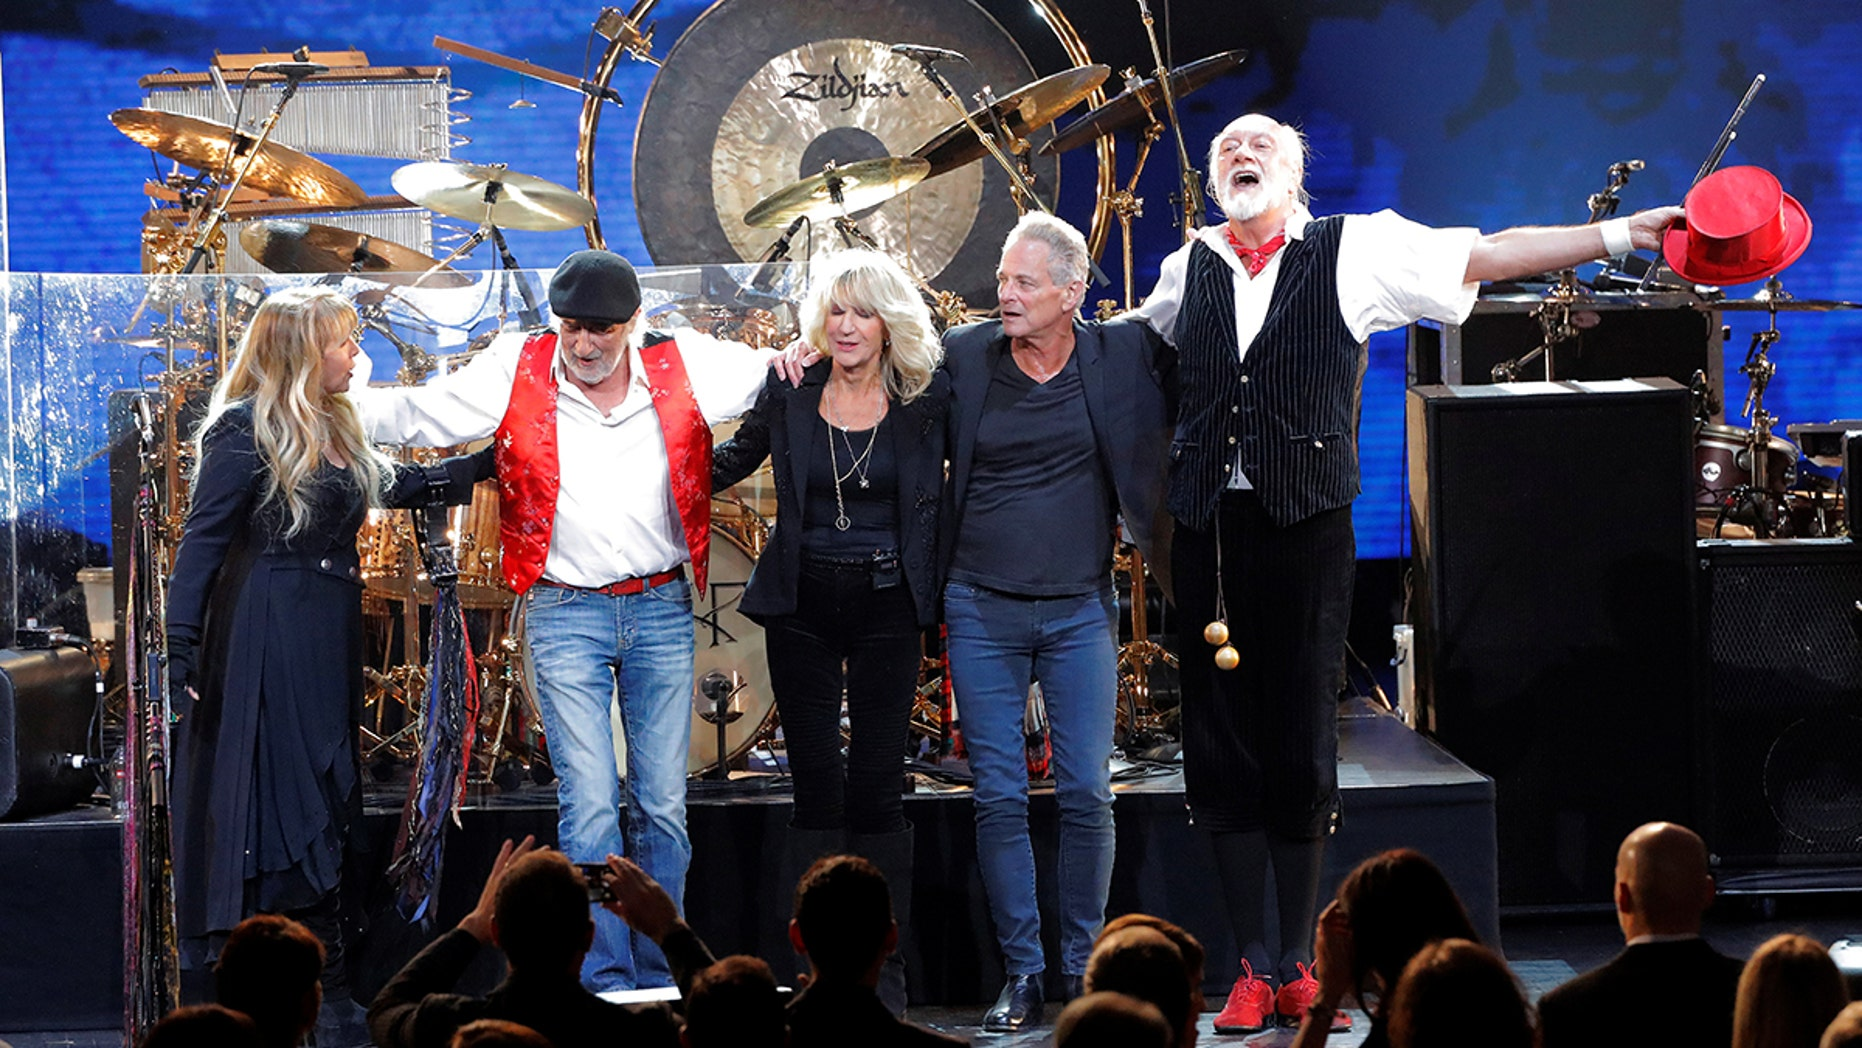 Honorees Stevie Nicks, John McVie, Christine McVie, Lindsey Buckingham, and Mick Fleetwood of the group Fleetwood Mac react after performing during the 2018 MusiCares Person of the Year show honoring Fleetwood Mac at Radio City Music Hall in Manhattan, New York, U.S., January 26, 2018. Recently, the band announced it was losing Buckingham.